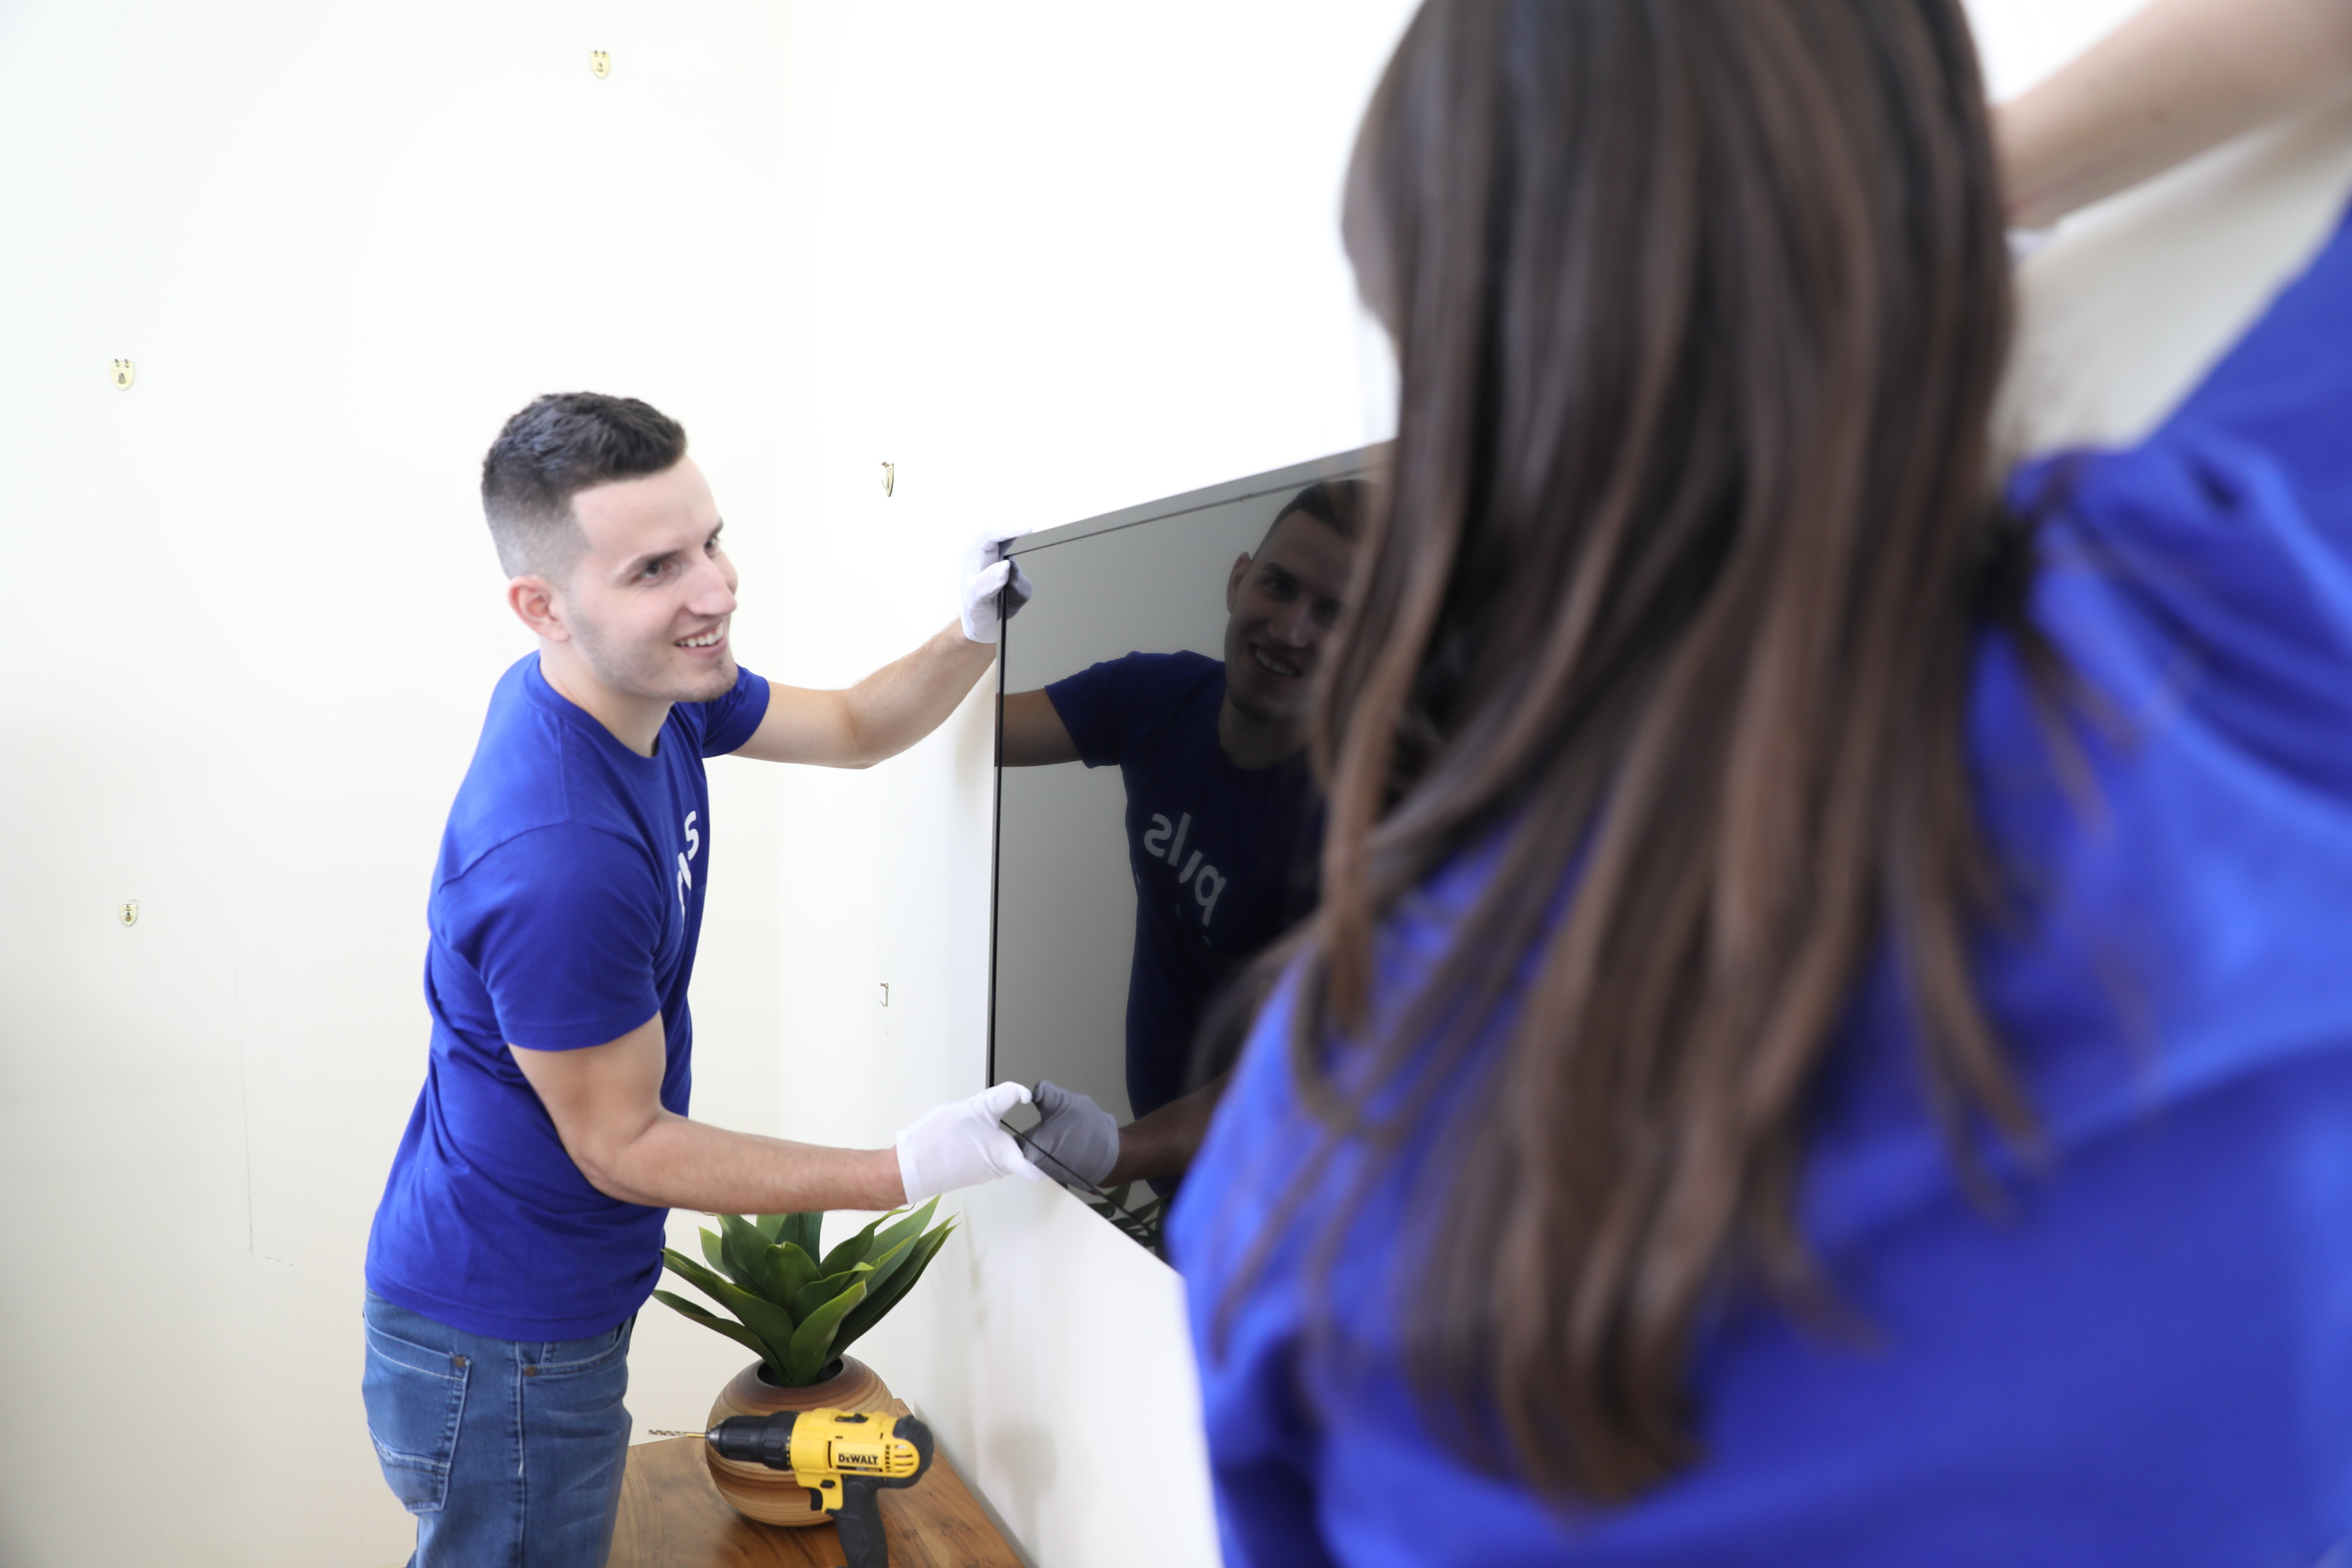 Handymen can mount your TV and help with electrical services.